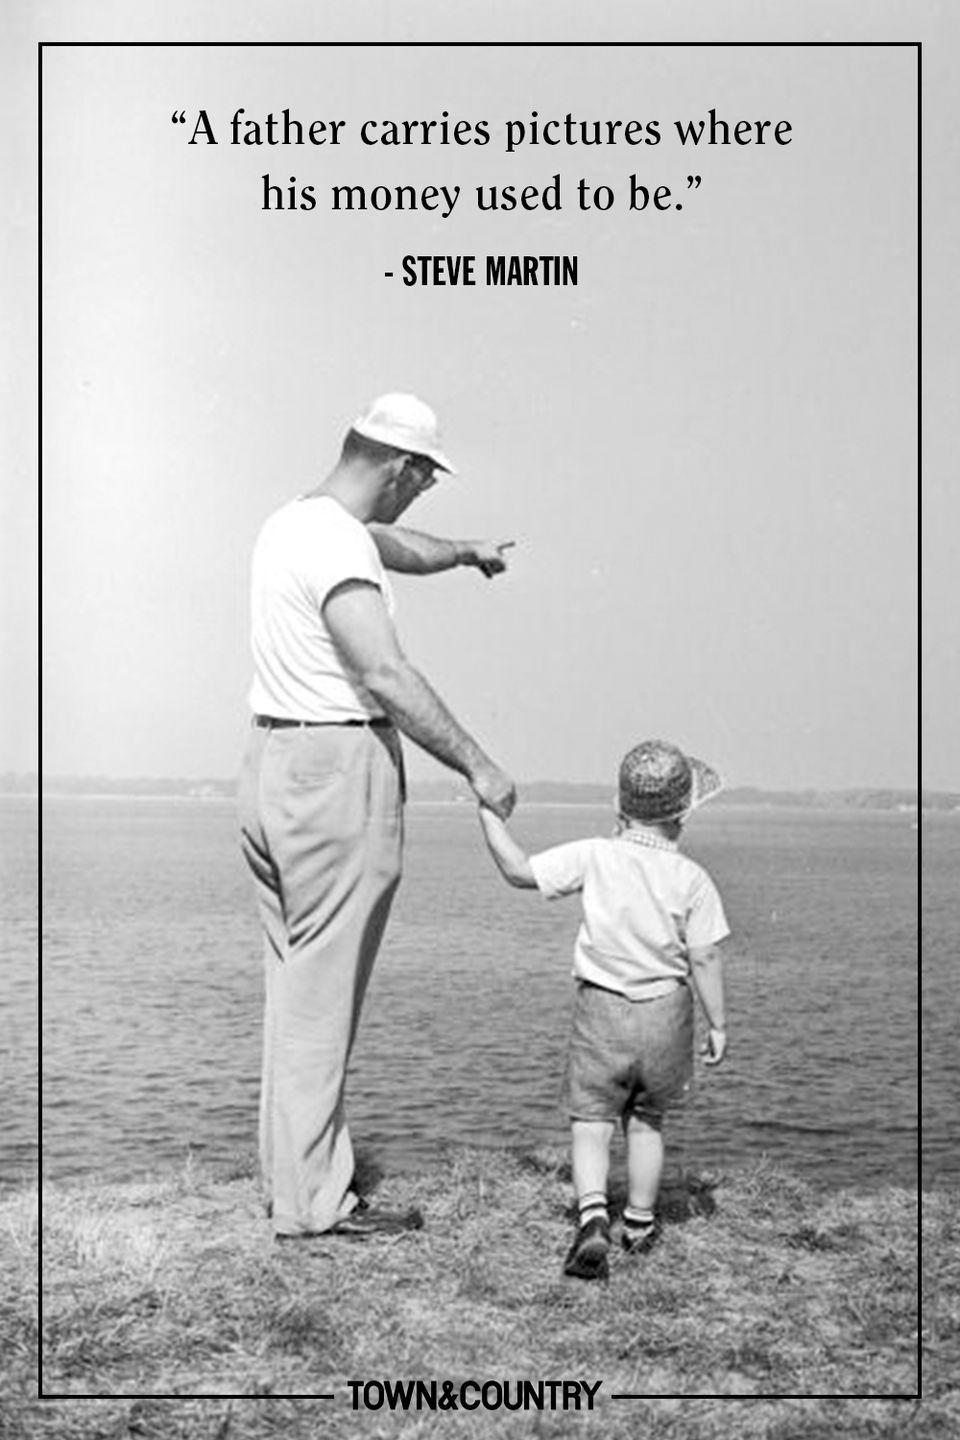 "<p>""A father carries pictures where his money used to be."" </p><p>- Steve Martin</p>"